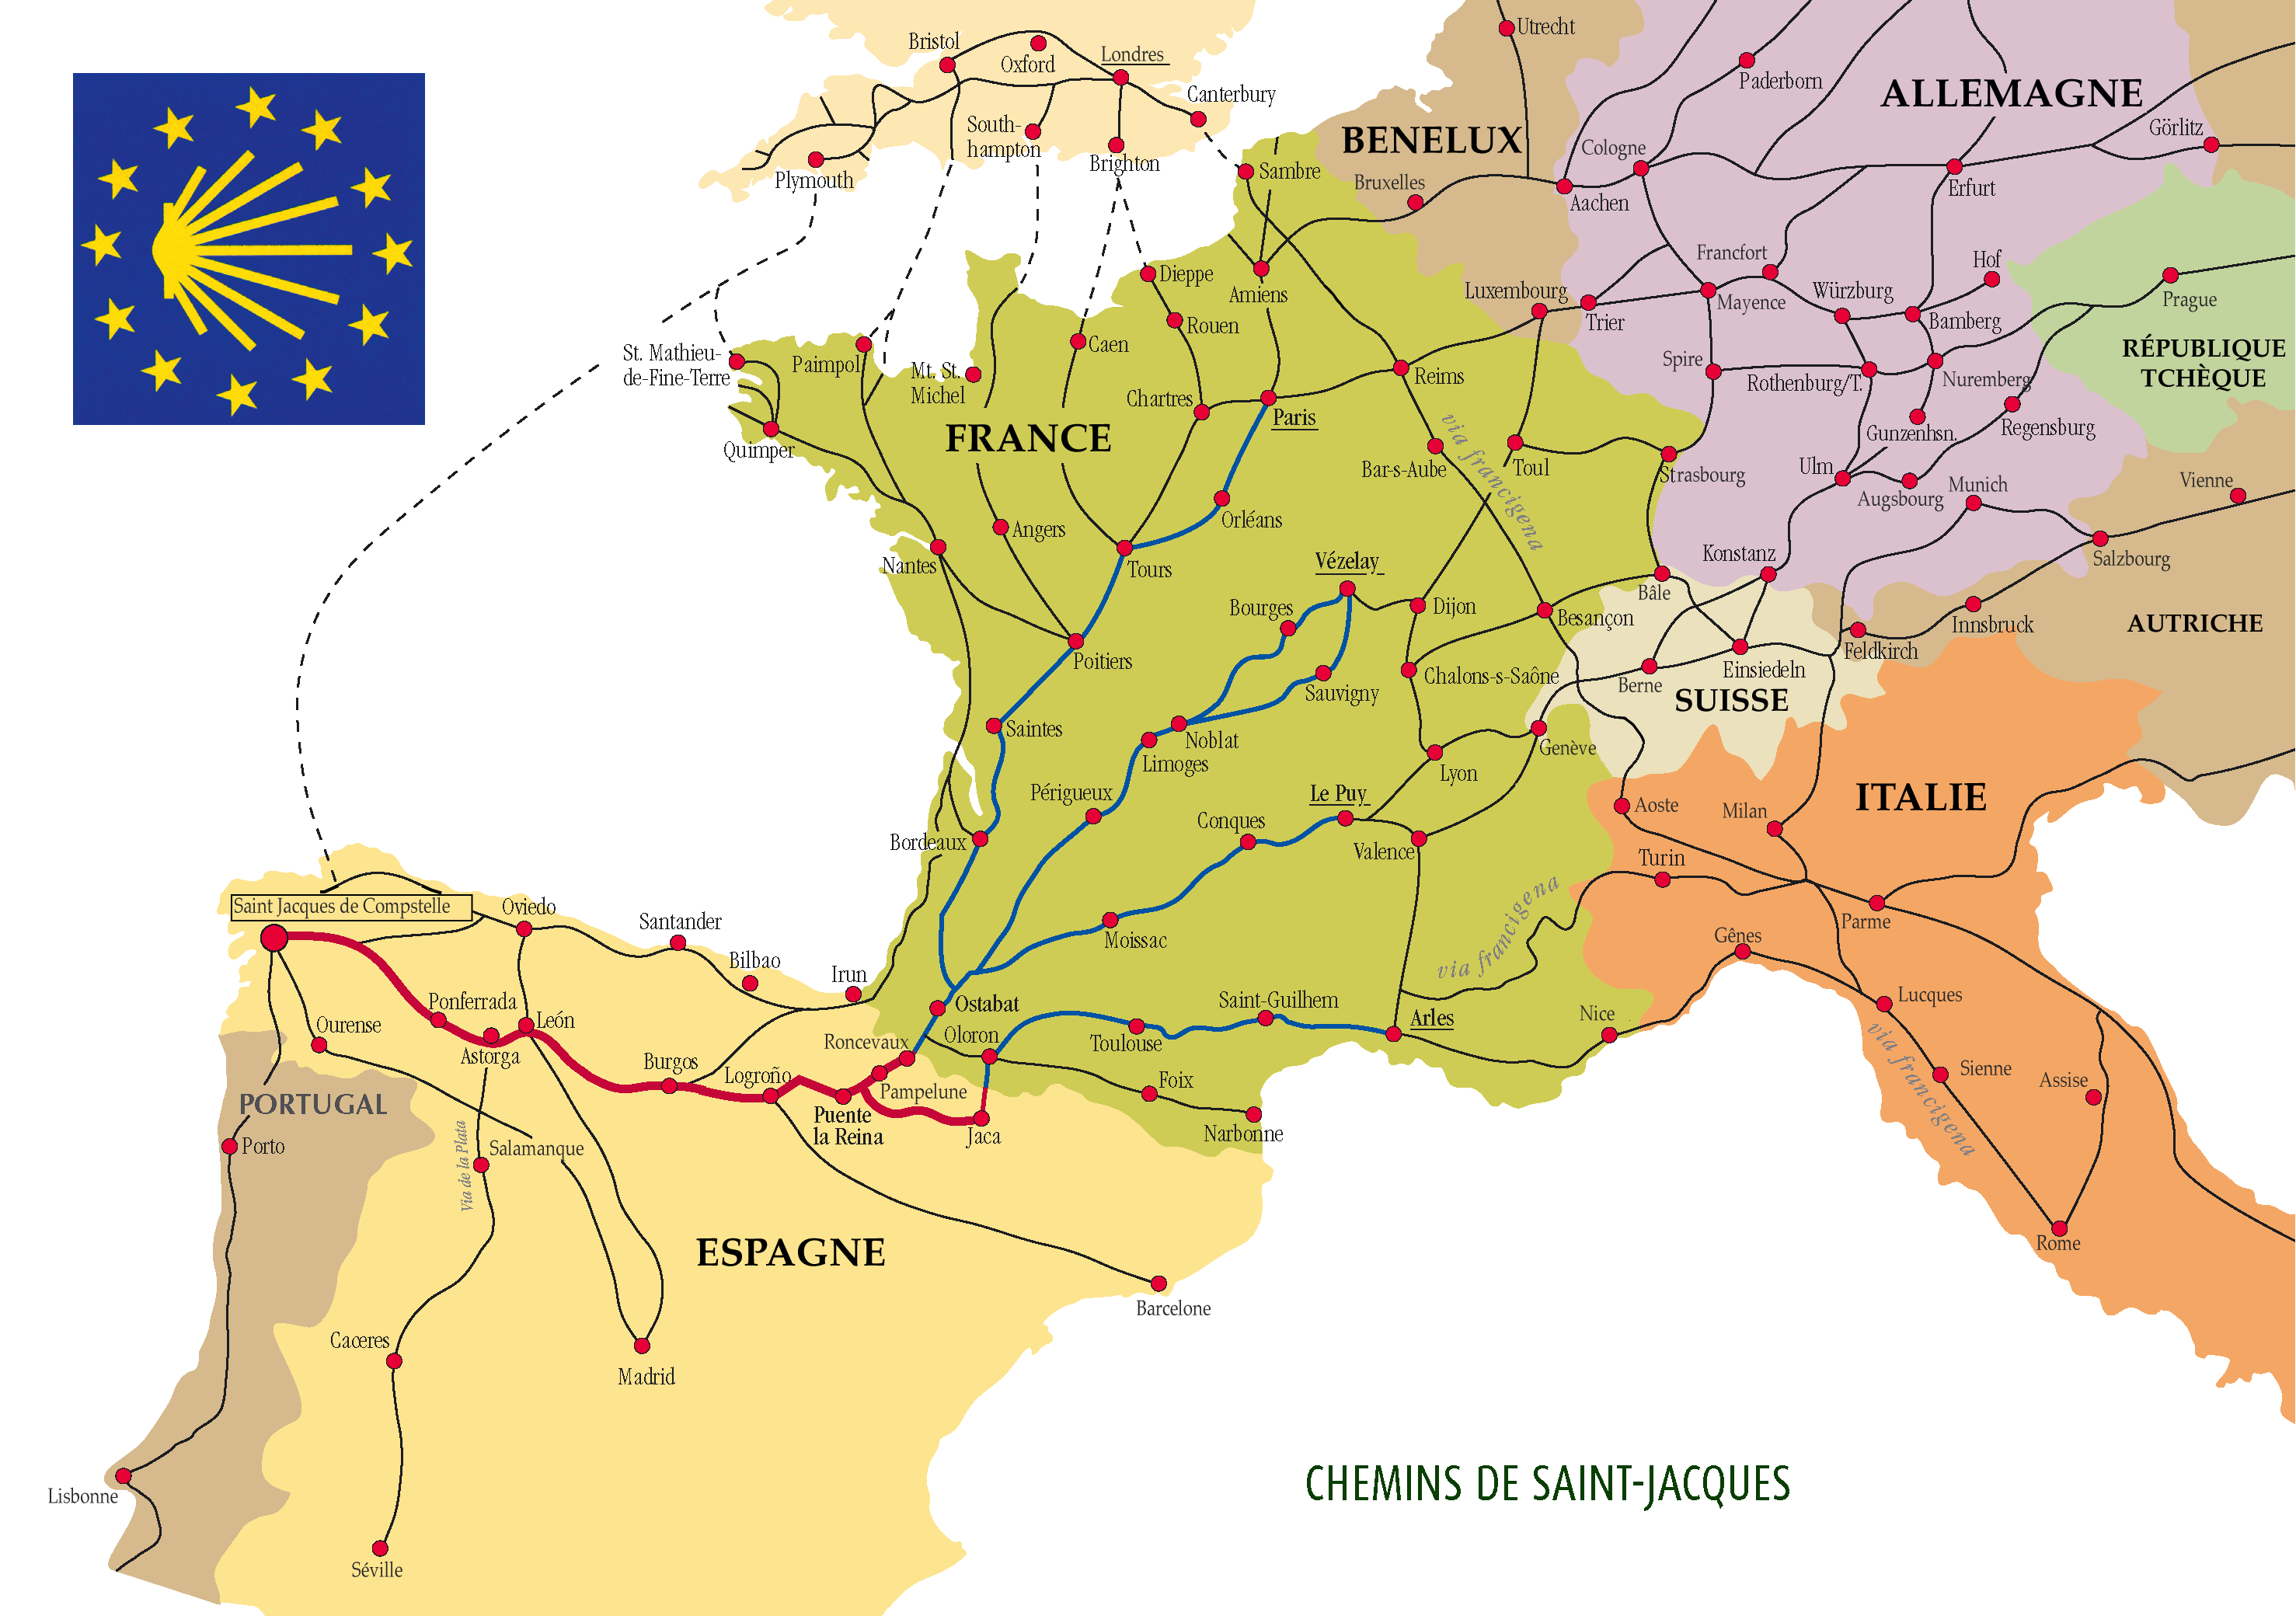 Camino de Santiago - Wikipedia, the free encyclopedia